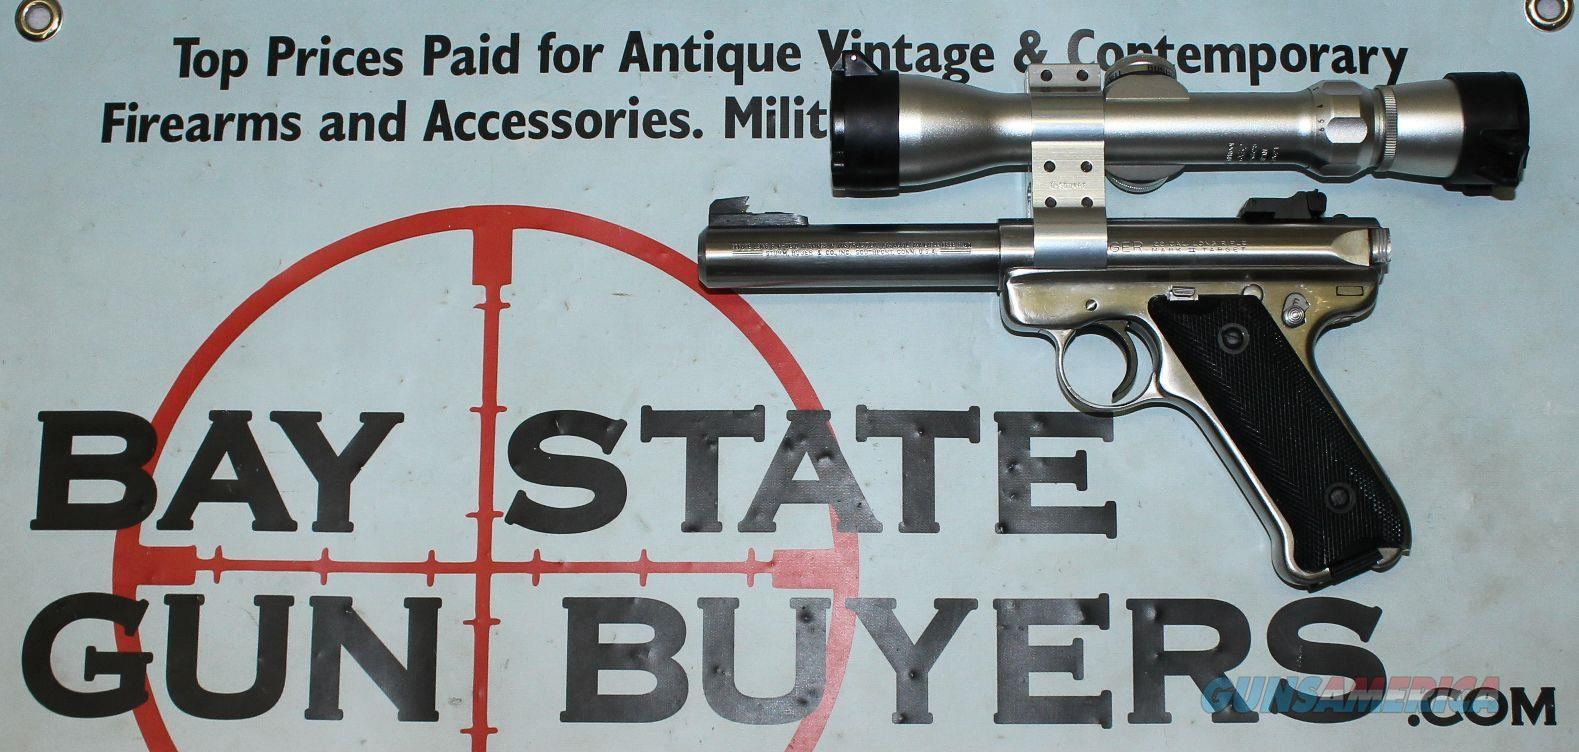 Ruger MK II Target Pistol - STAINLESS - .22lr - BUSHNELL 2-6x32 Scope   Guns > Pistols > Ruger Semi-Auto Pistols > Mark I/II/III Family